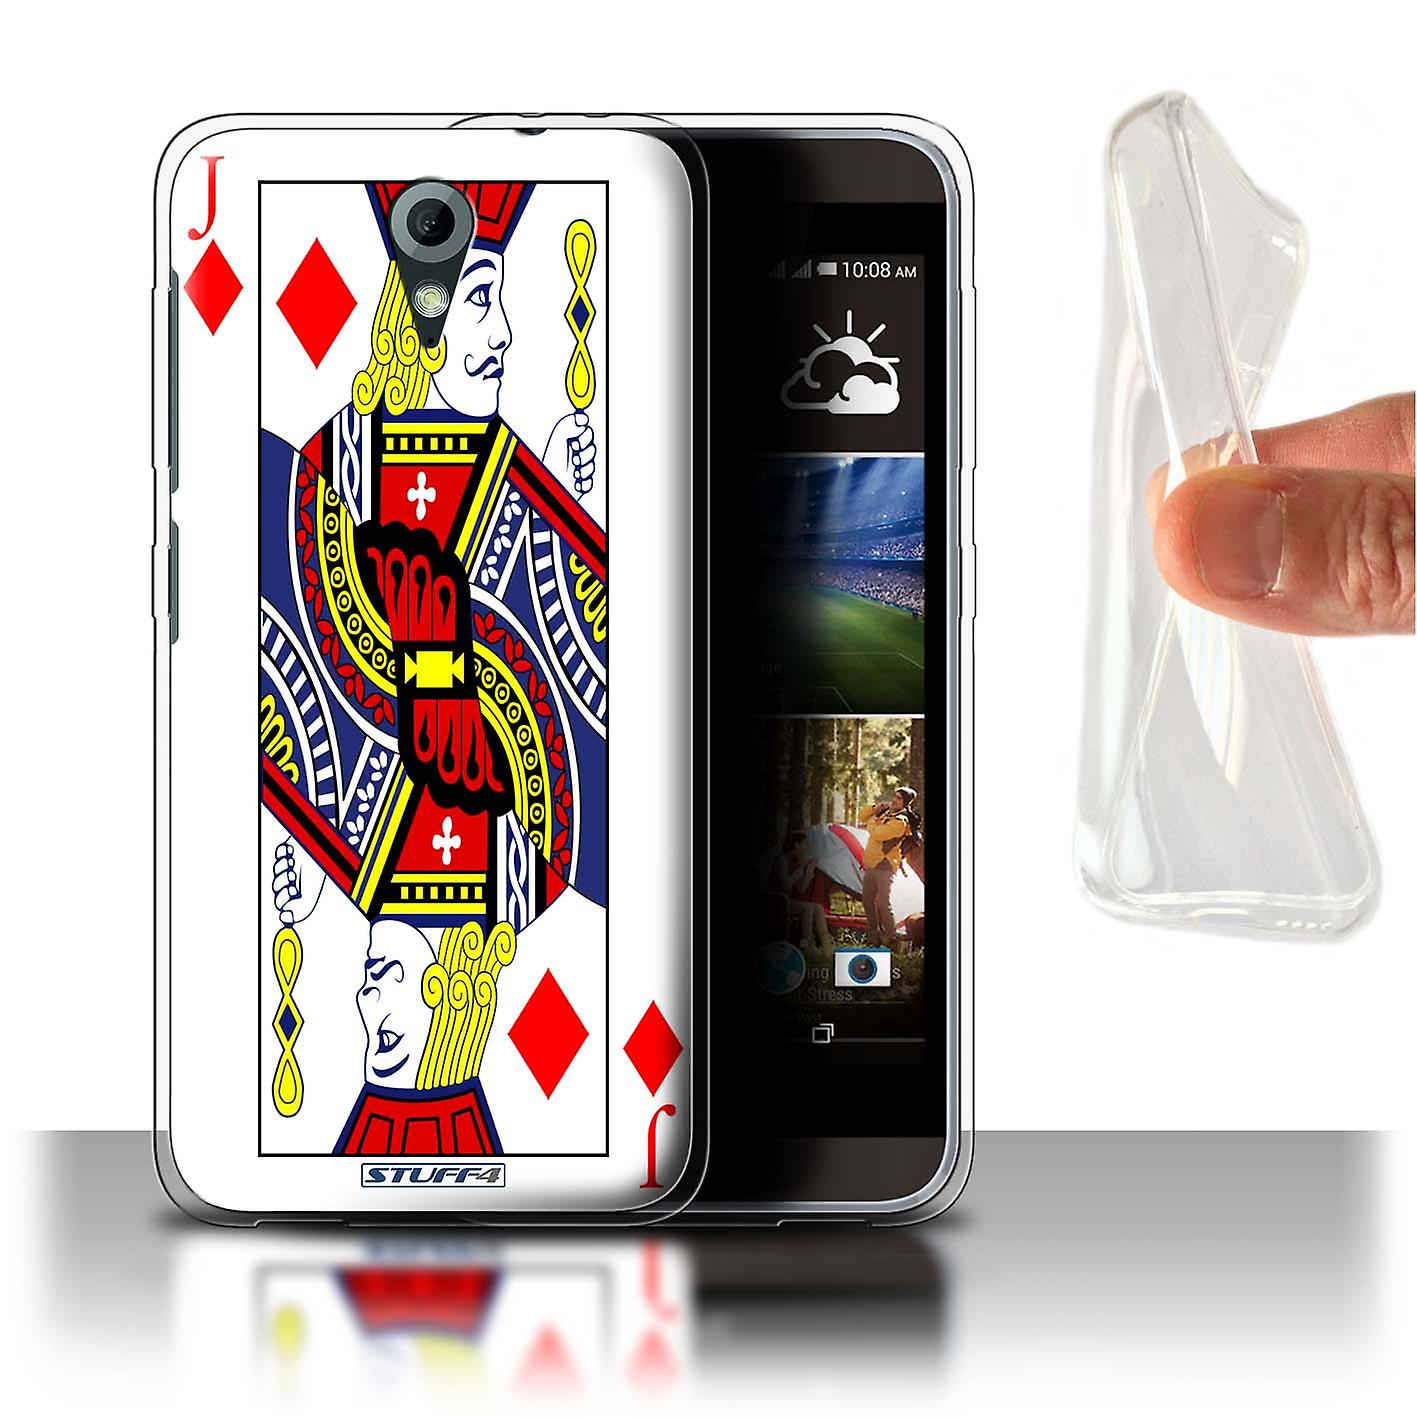 STUFF4 Gel/TPU Case/Cover for HTC Desire 820 Mini/Jack of Diamonds/Playing Cards